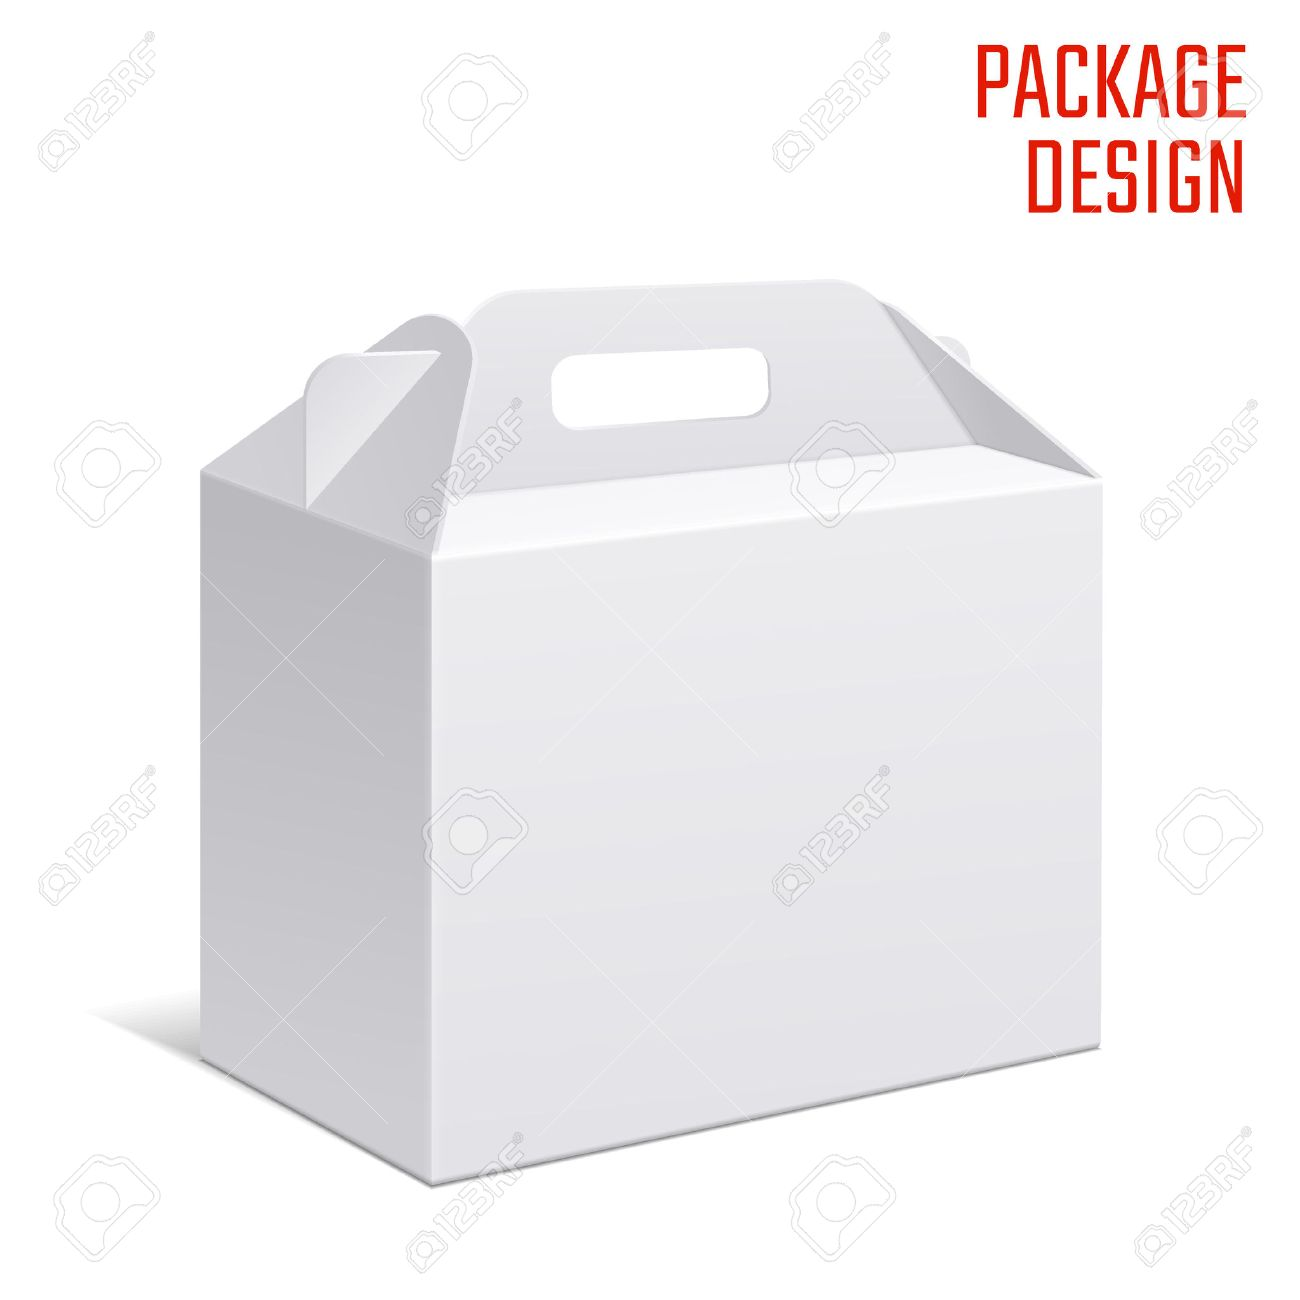 Vector Illustration of Clear Gift Carton Box for Design, Website, Background, Banner. White Habdle Package Template isolated on white. Retail pack with for your brand on it - 49779994